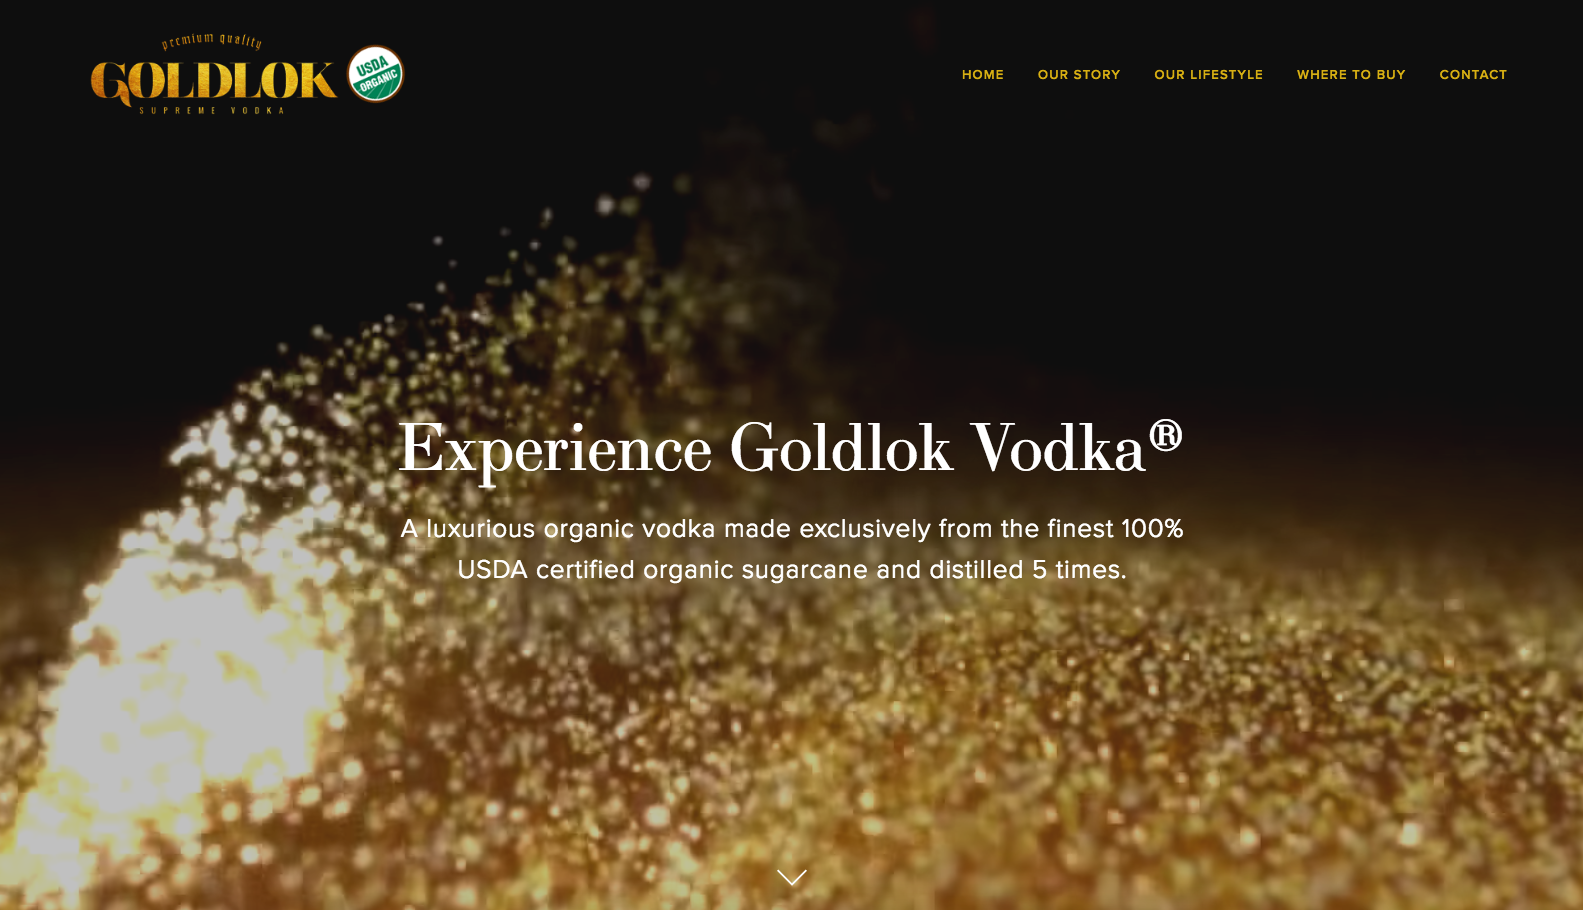 Company website for Goldlok Supreme Vodka featuring parallax scrolling and HD loop background video, geo-locator for visitors to easily find retailers near them or in any city, and merchandise page coming soon.